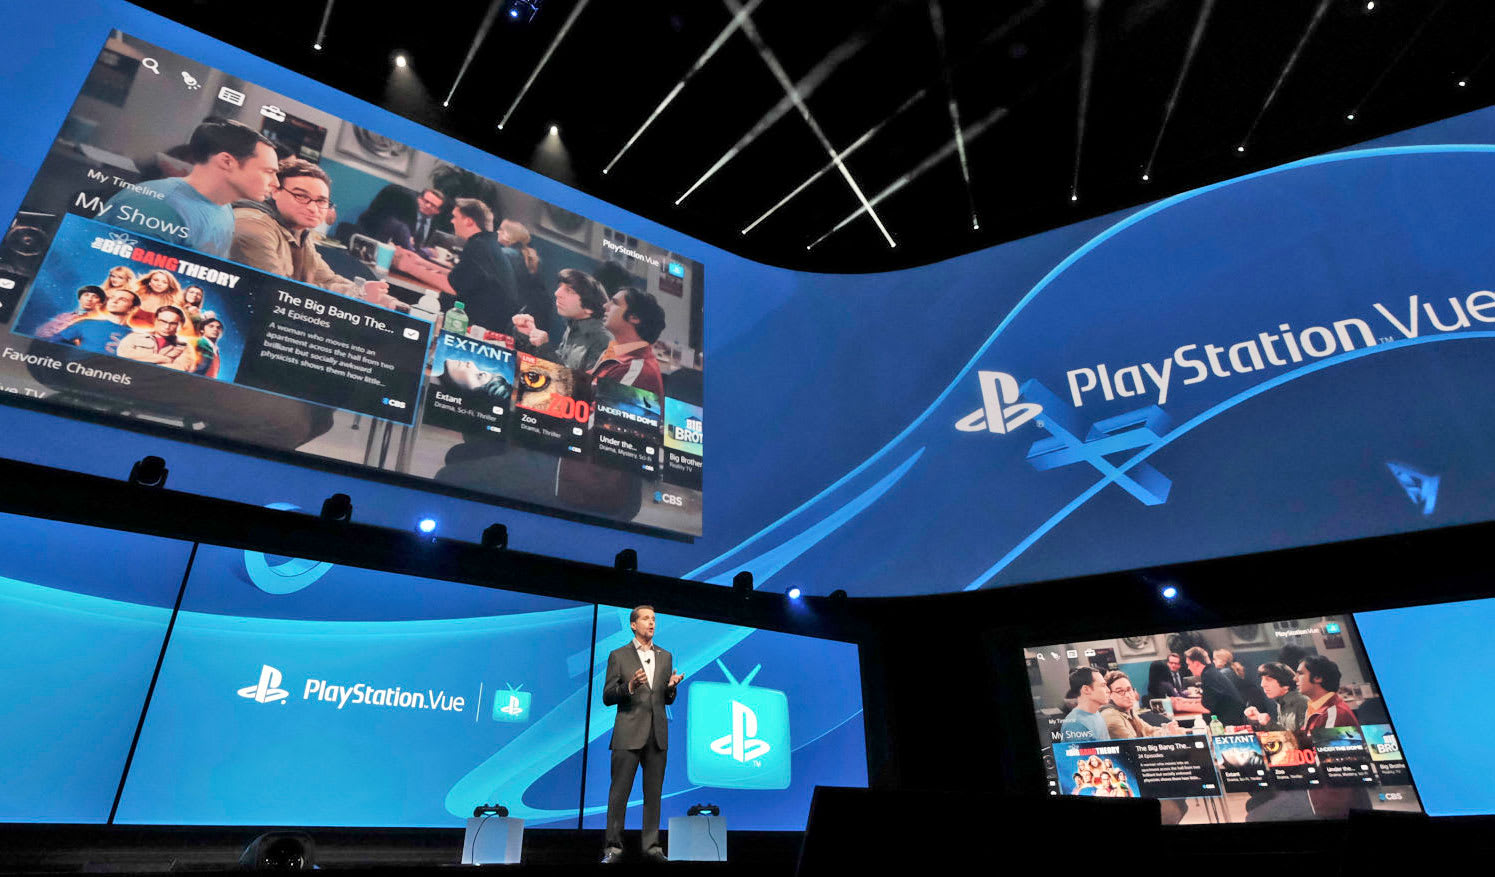 PlayStation Vue's local channel count expands to over 500